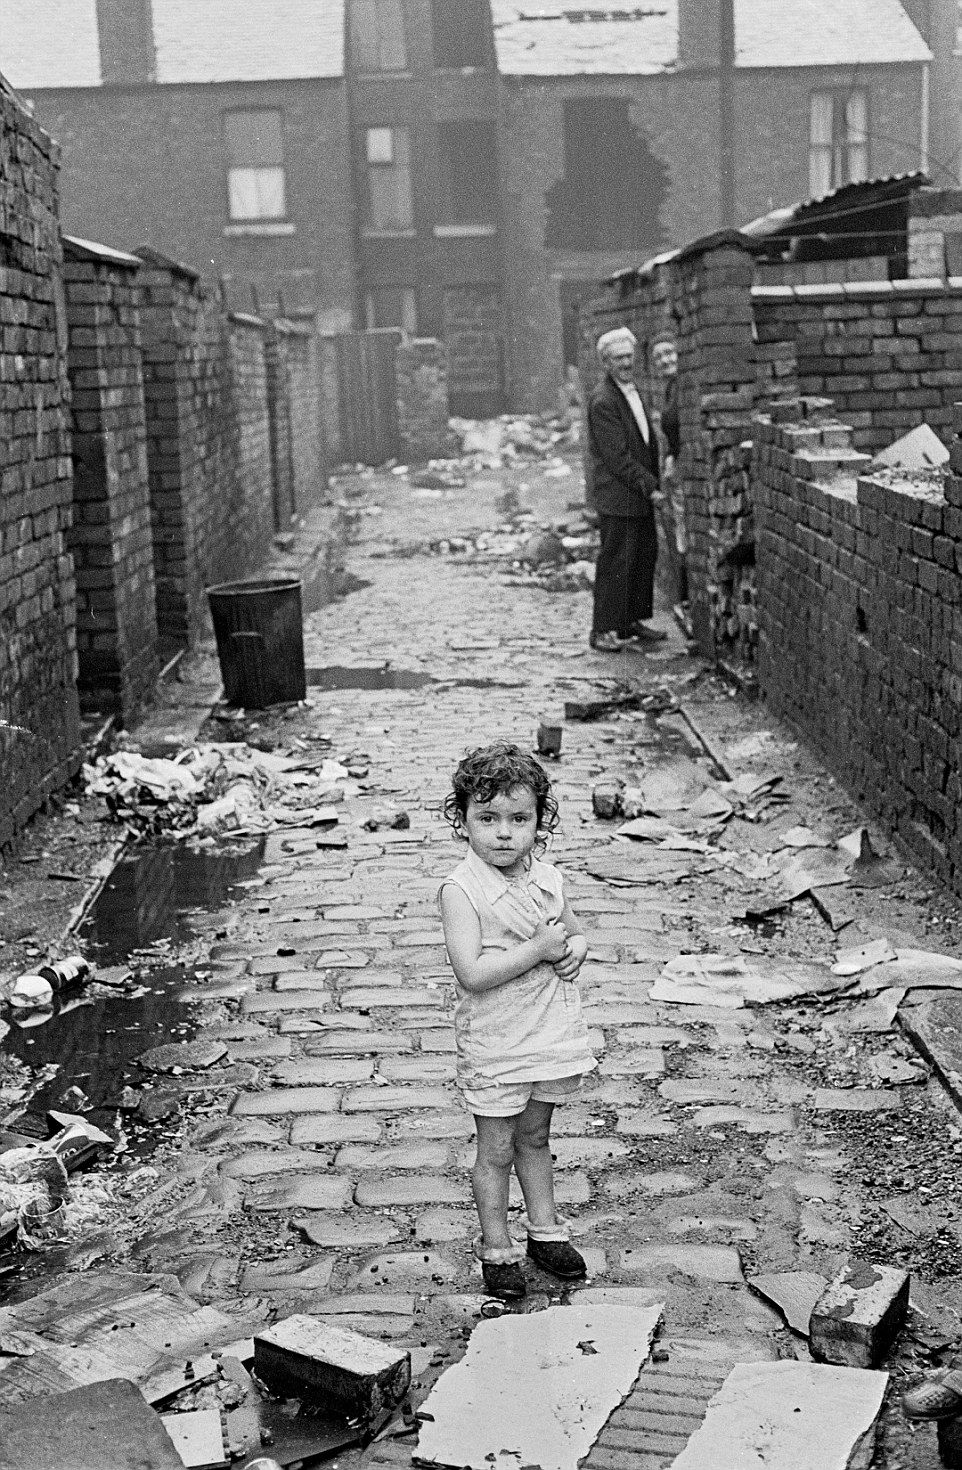 This child stares at the camera in the Manchester street, wearing barely any clothes, as an older couple watch in the background